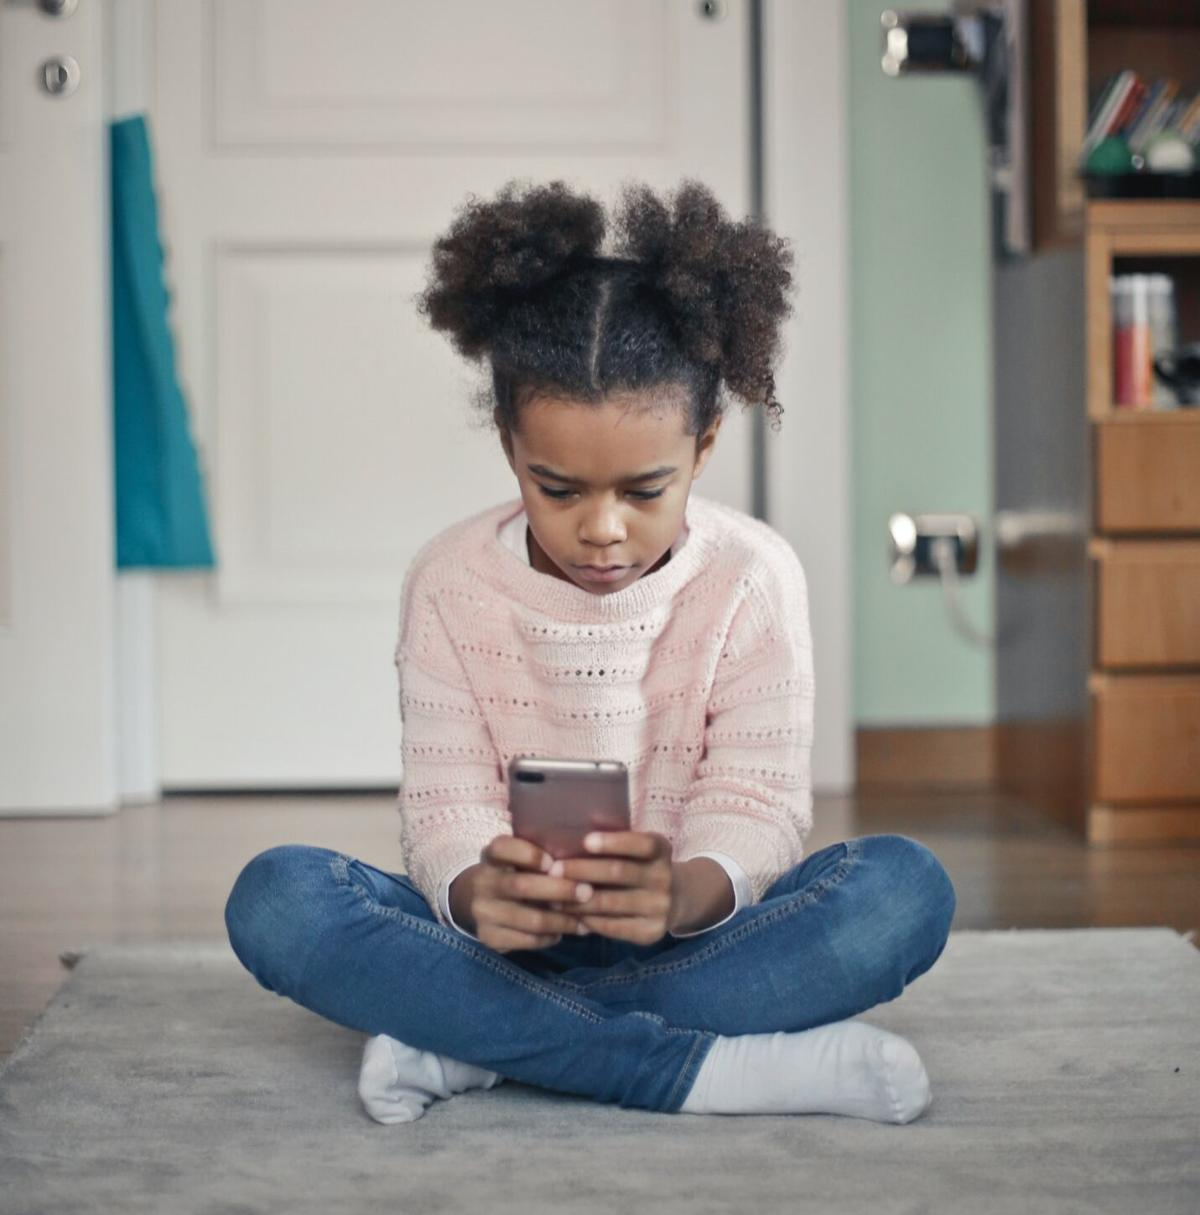 Cell phones for kids